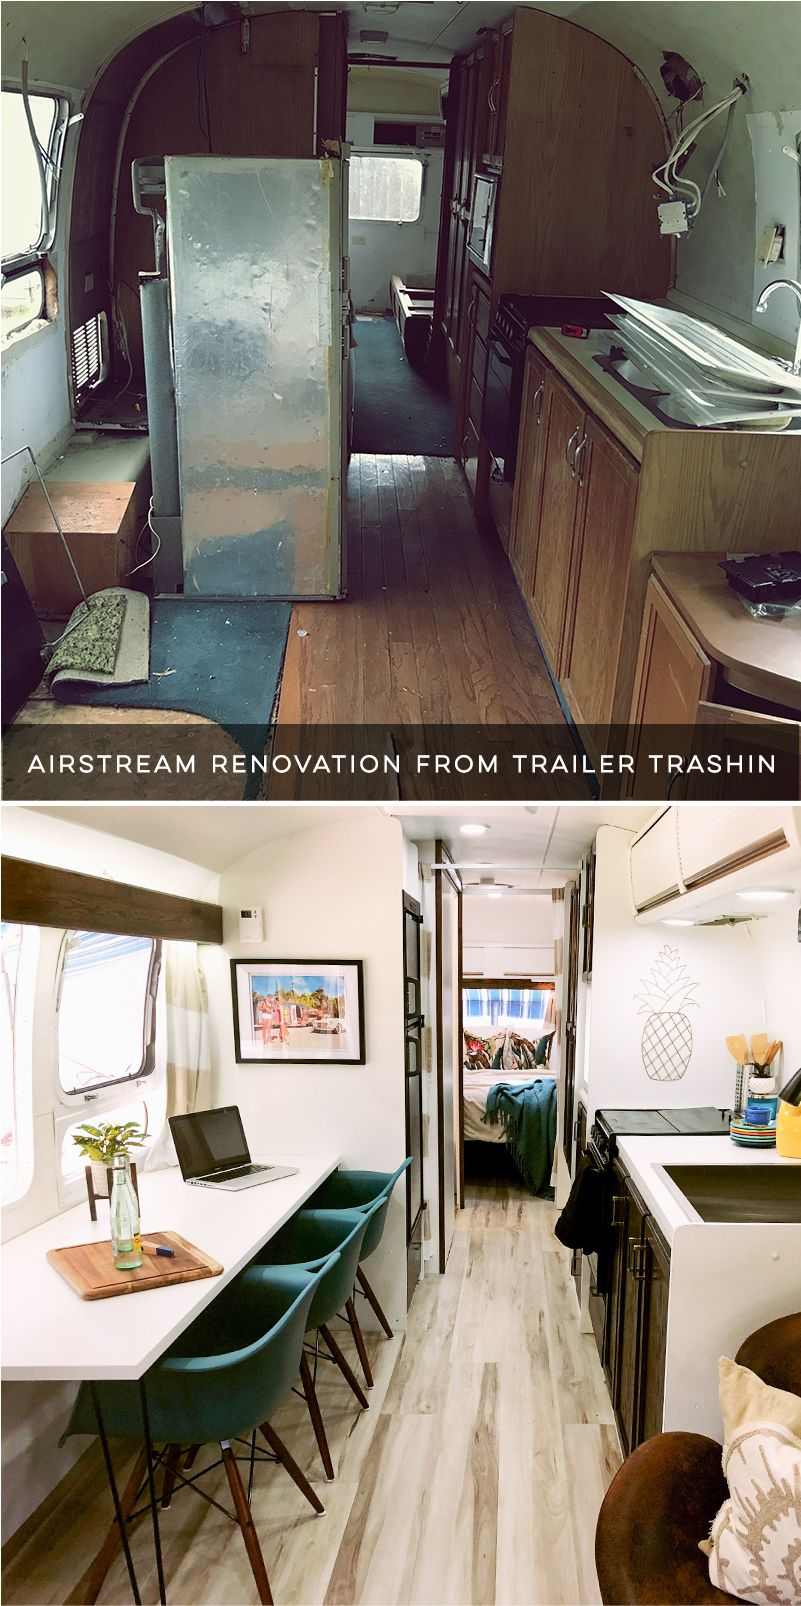 Tour This Renovated Airstream From Trailer Trashin Caravan Renovation Renovations Airstream Renovation Living on one dollar trailer